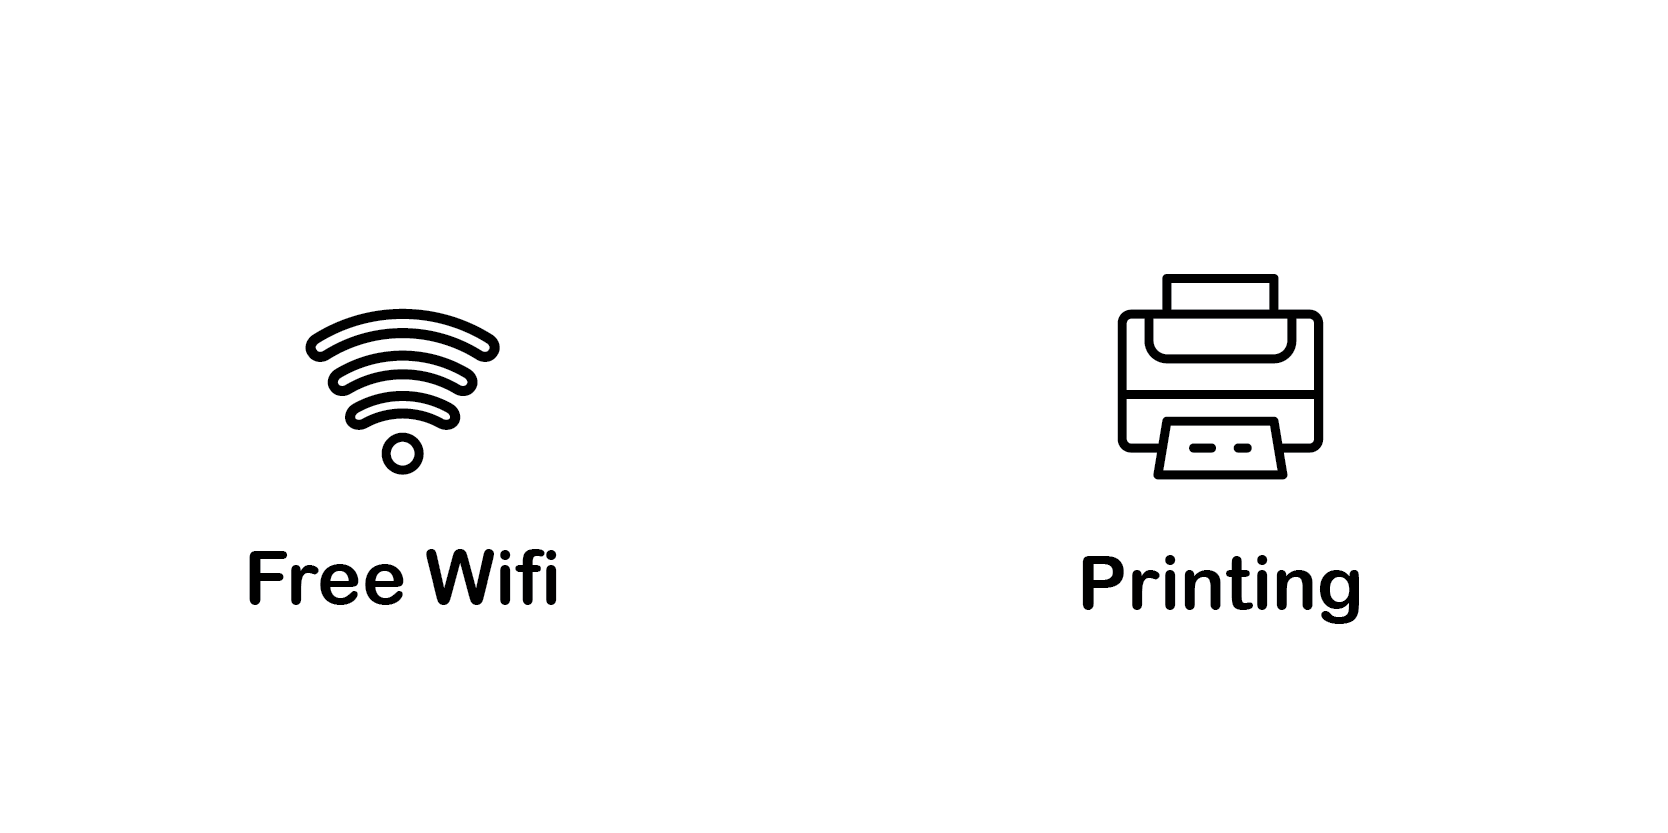 free wifi and printing services